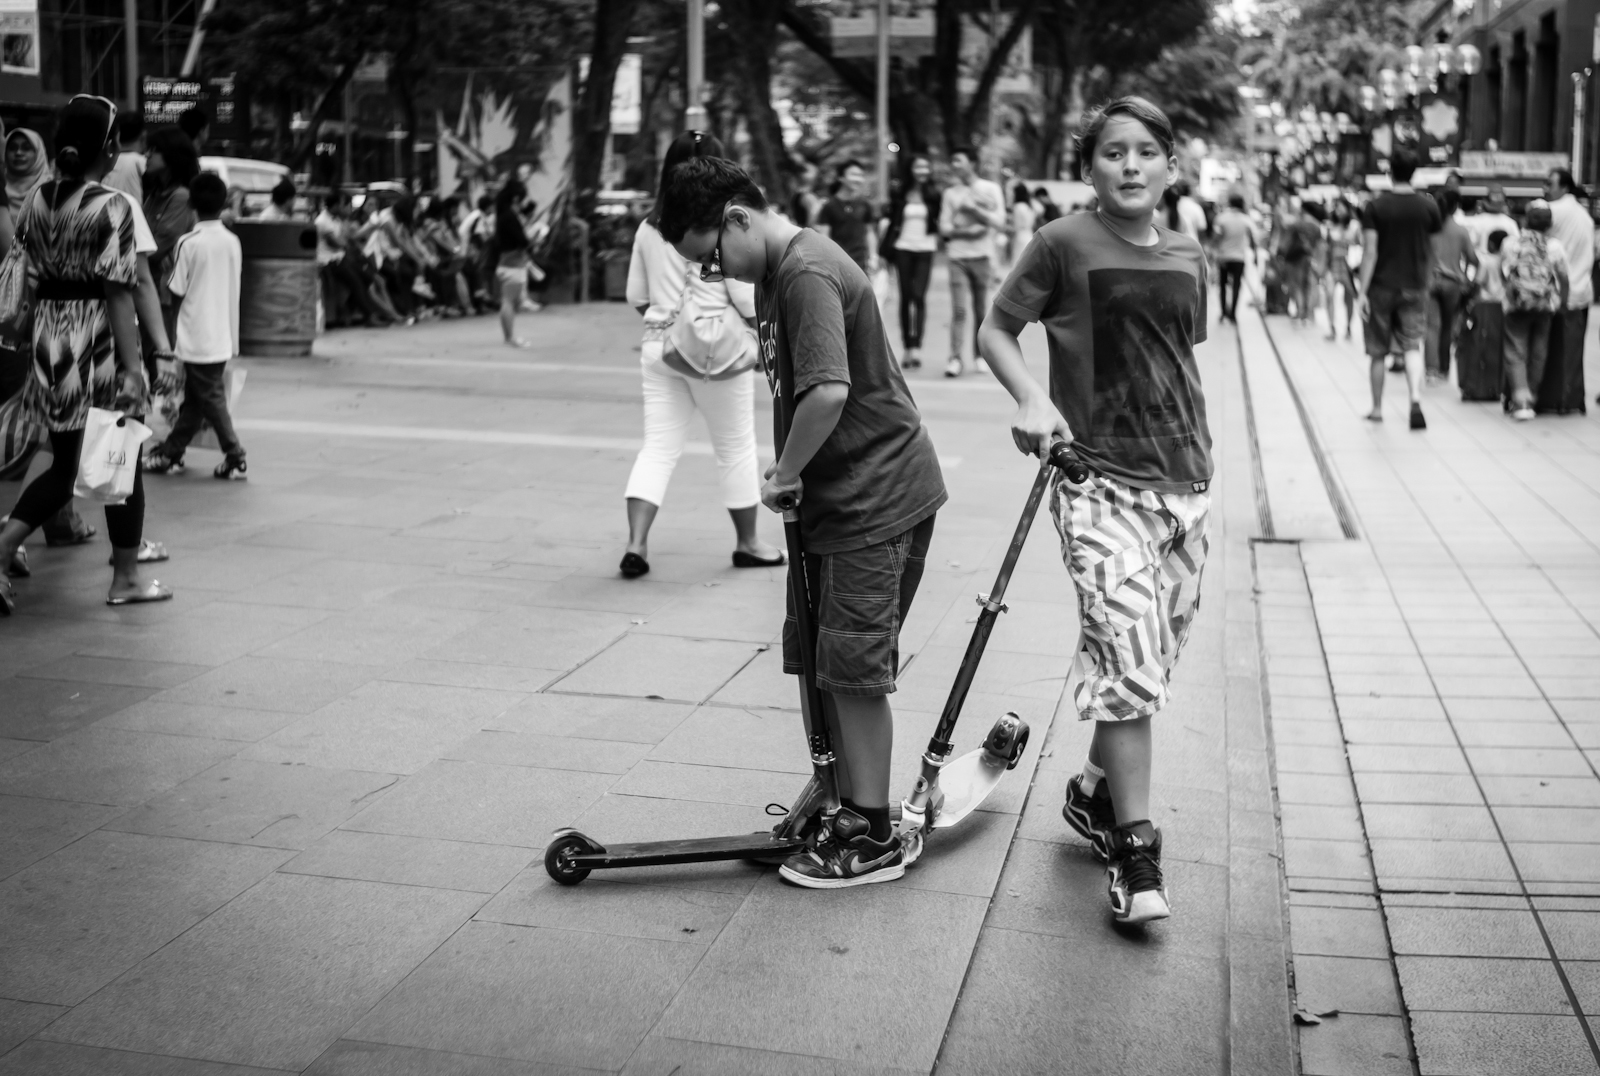 Street photography - Kids with their scooters